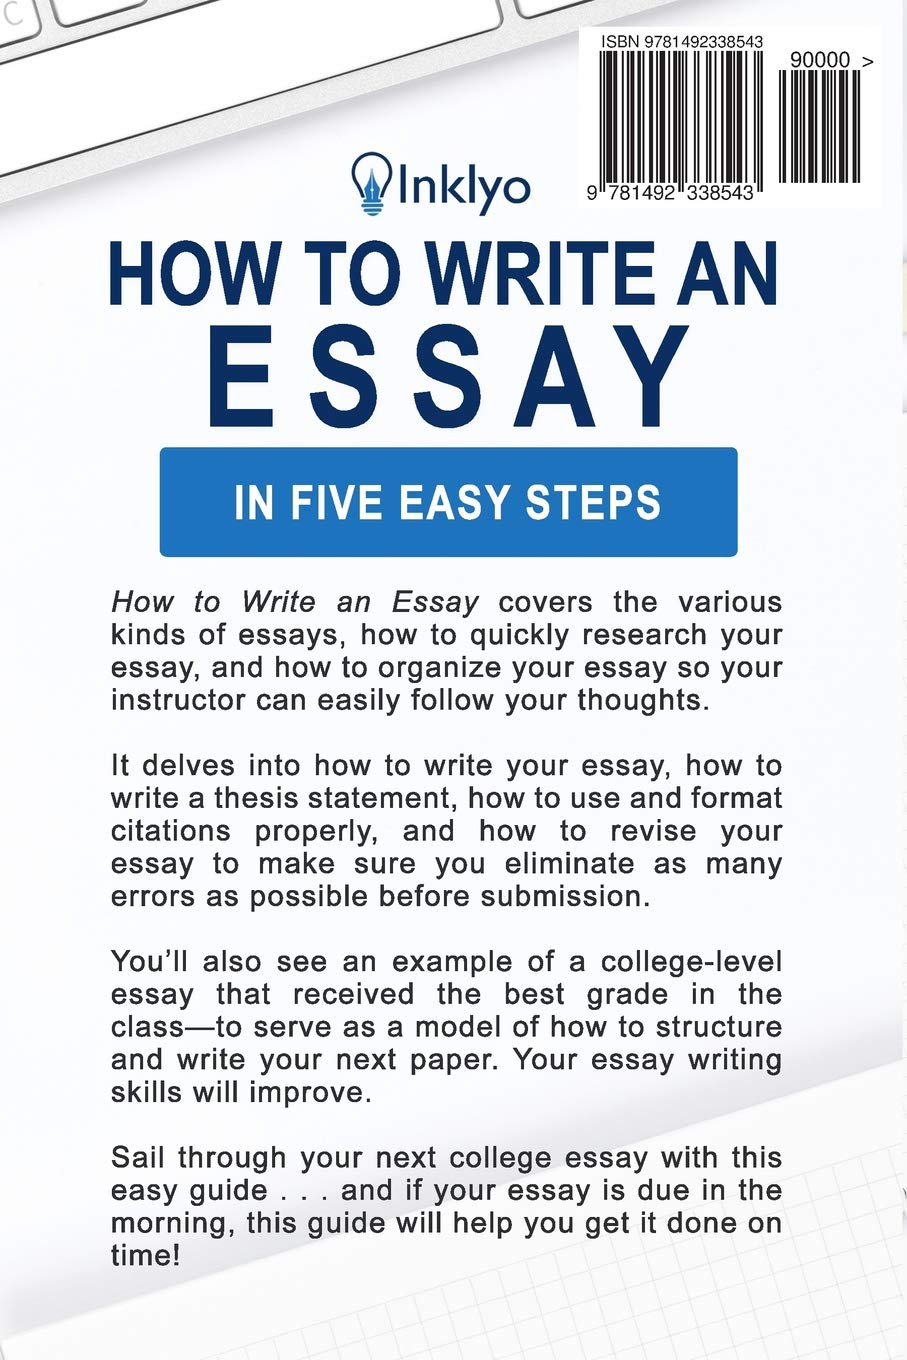 how to write an essay in five easy steps amazonin